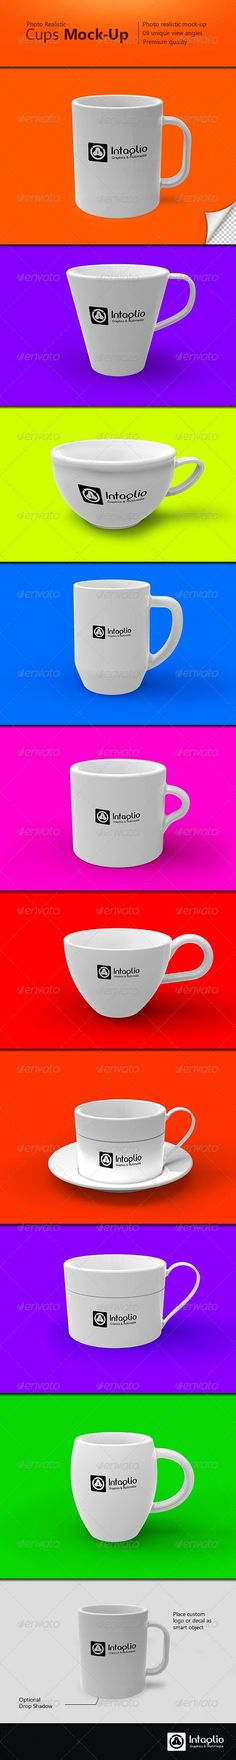 Photo-realistic Cups Mock-Up » Free Hero Graphic Design: Vectors AEP Projects PSD Sources Web Templates – HeroGFX.com